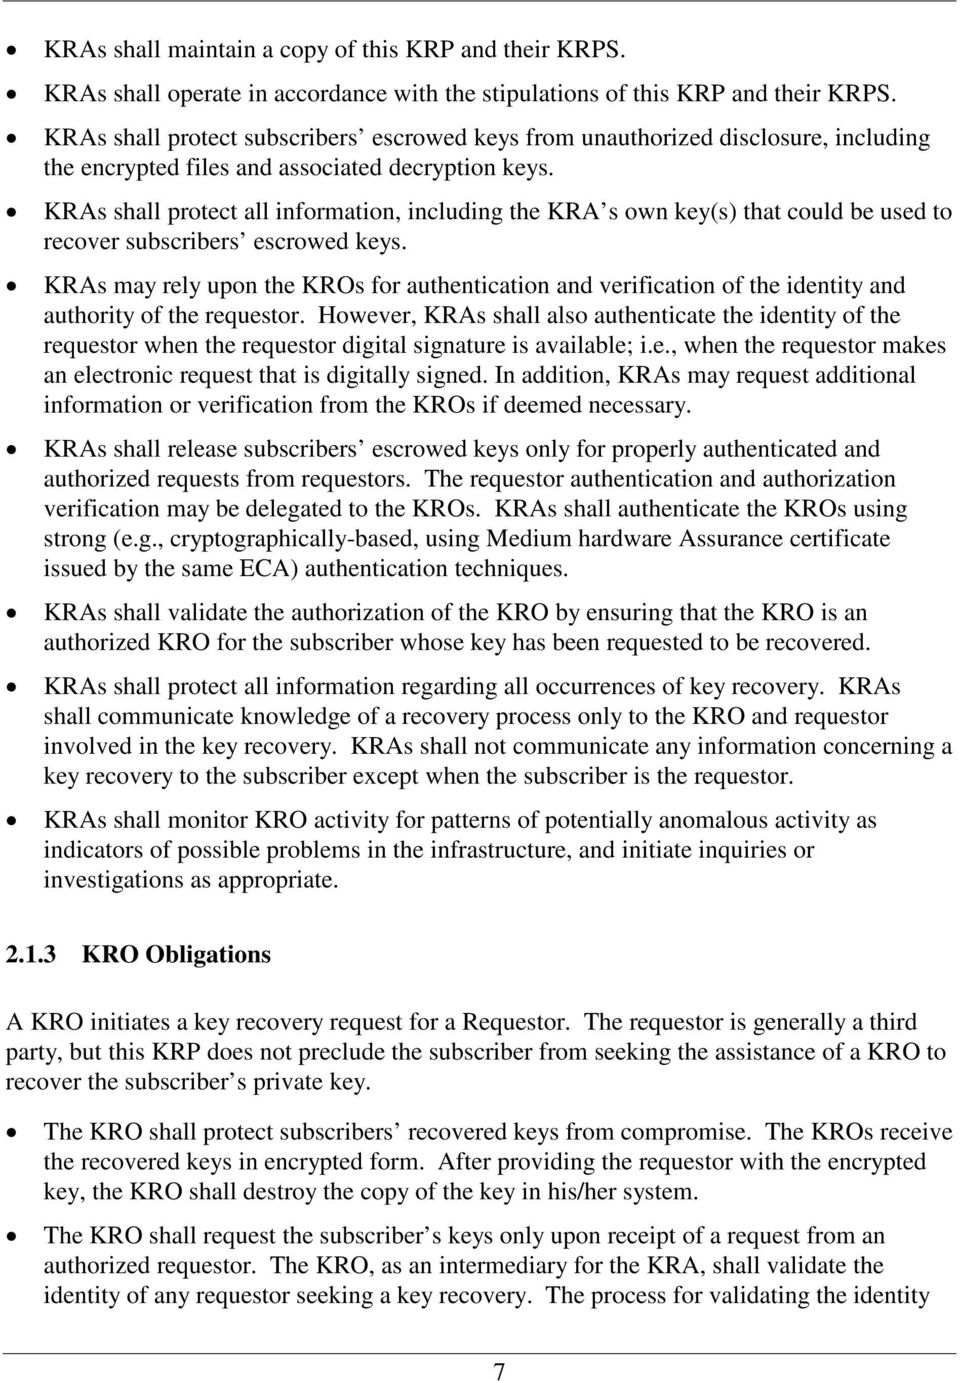 KRAs shall protect all information, including the KRA s own key(s) that could be used to recover subscribers escrowed keys.